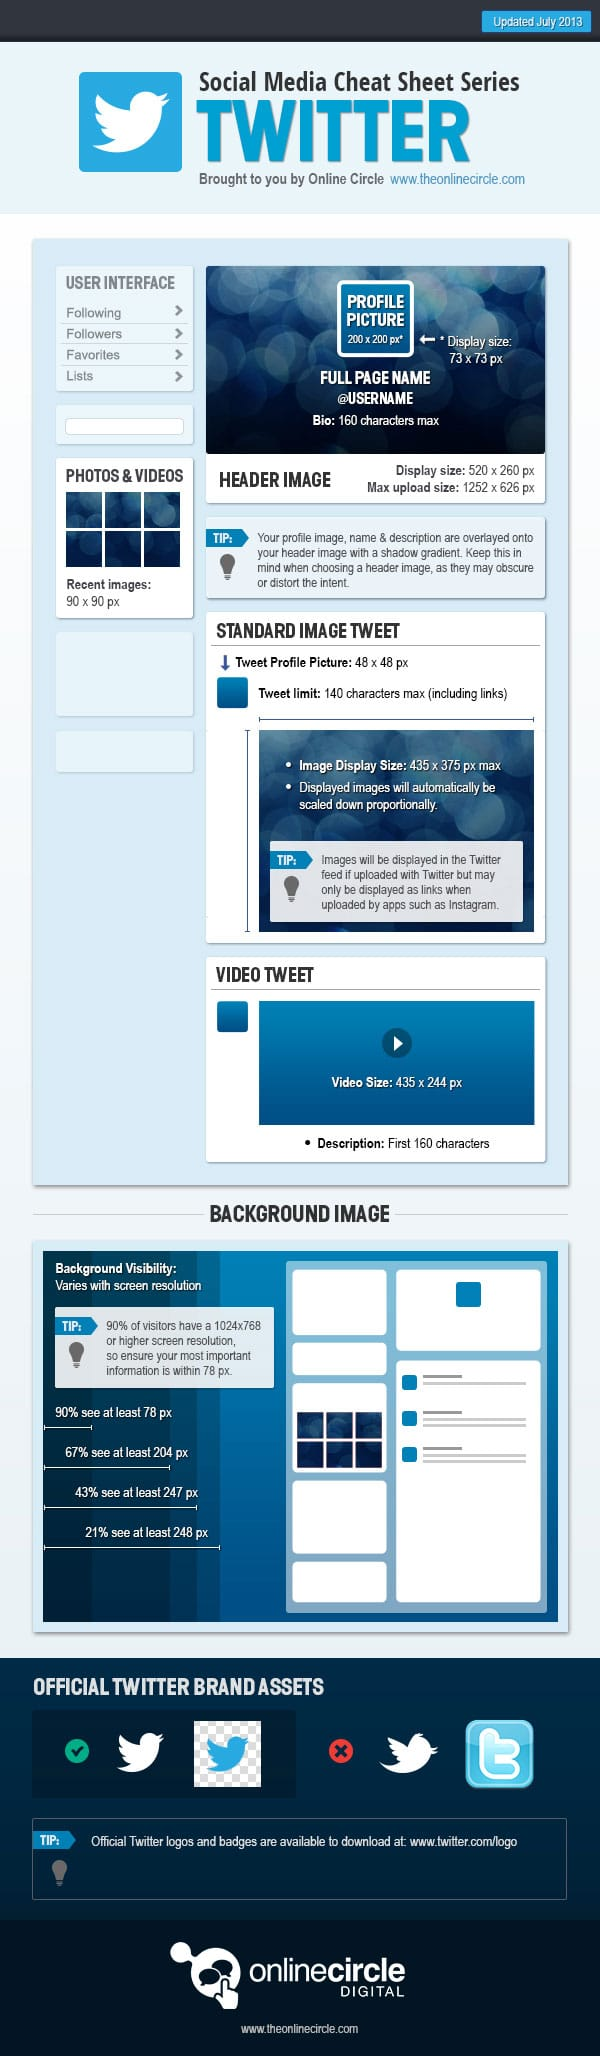 twitter-profile-page-infographic